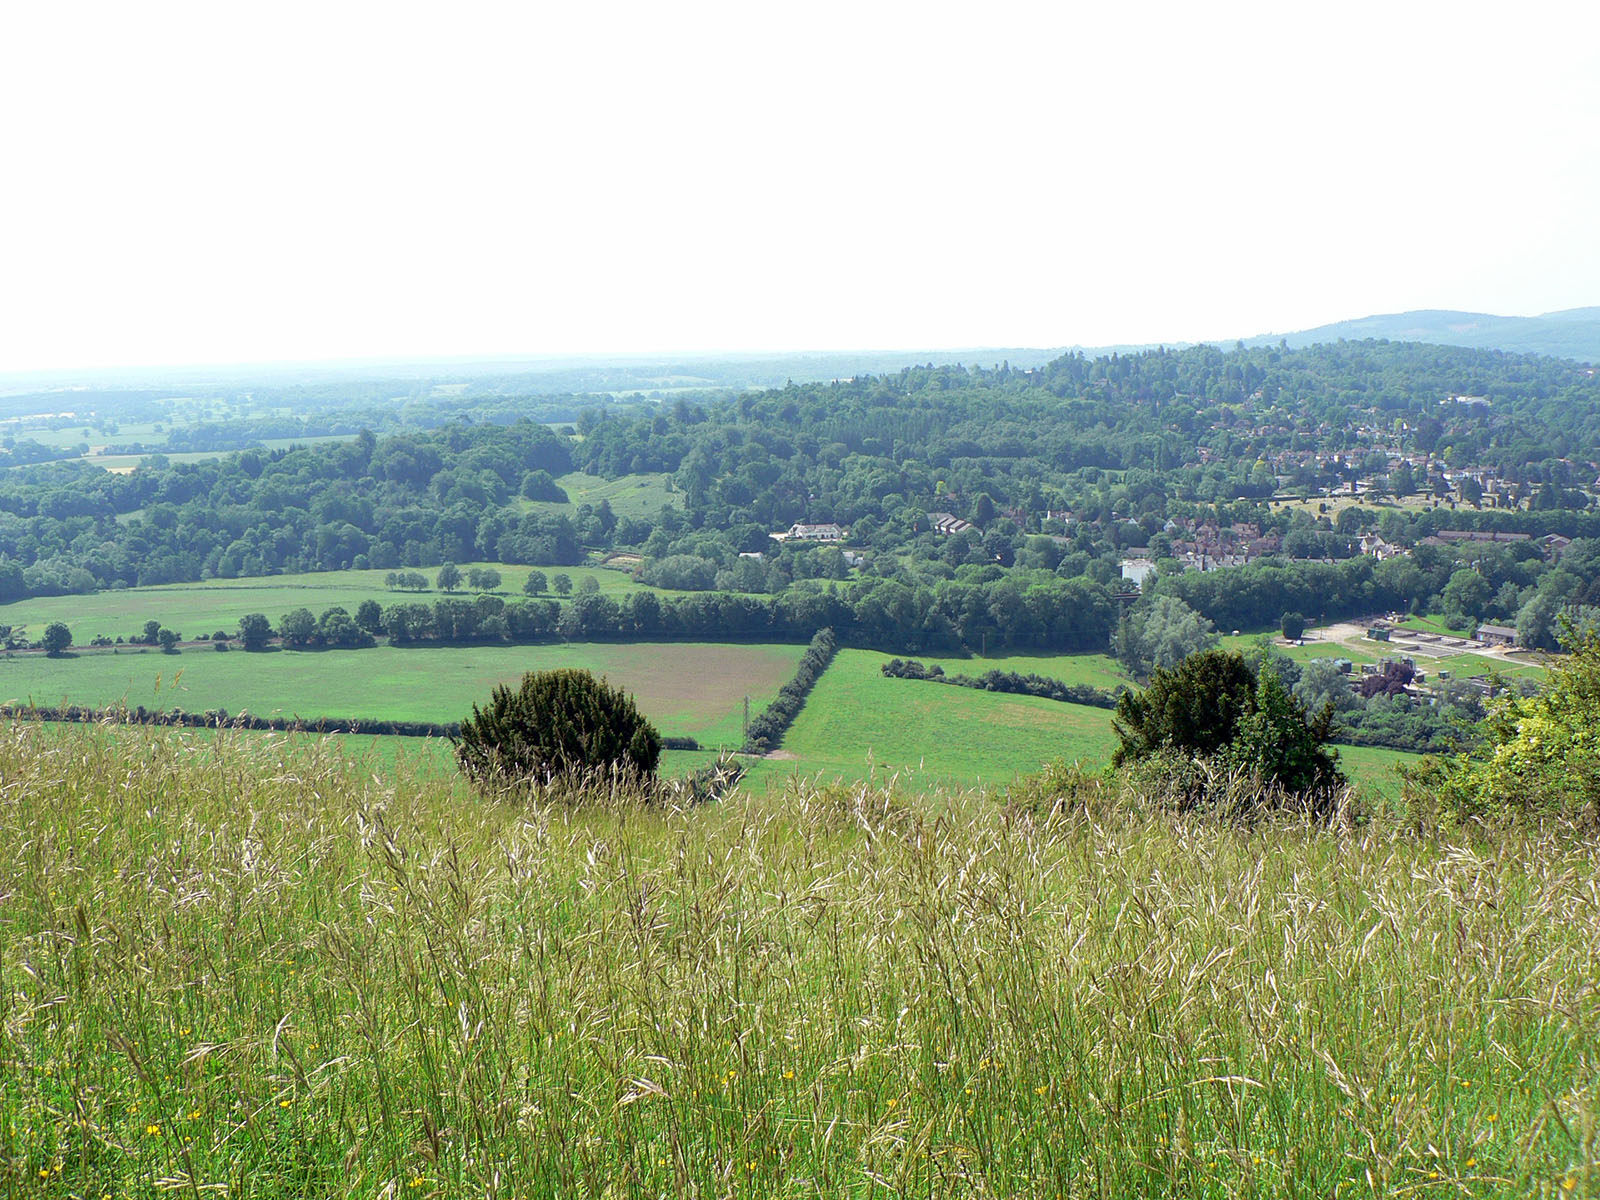 The view from the summit of Box Hill, Surrey, UK.